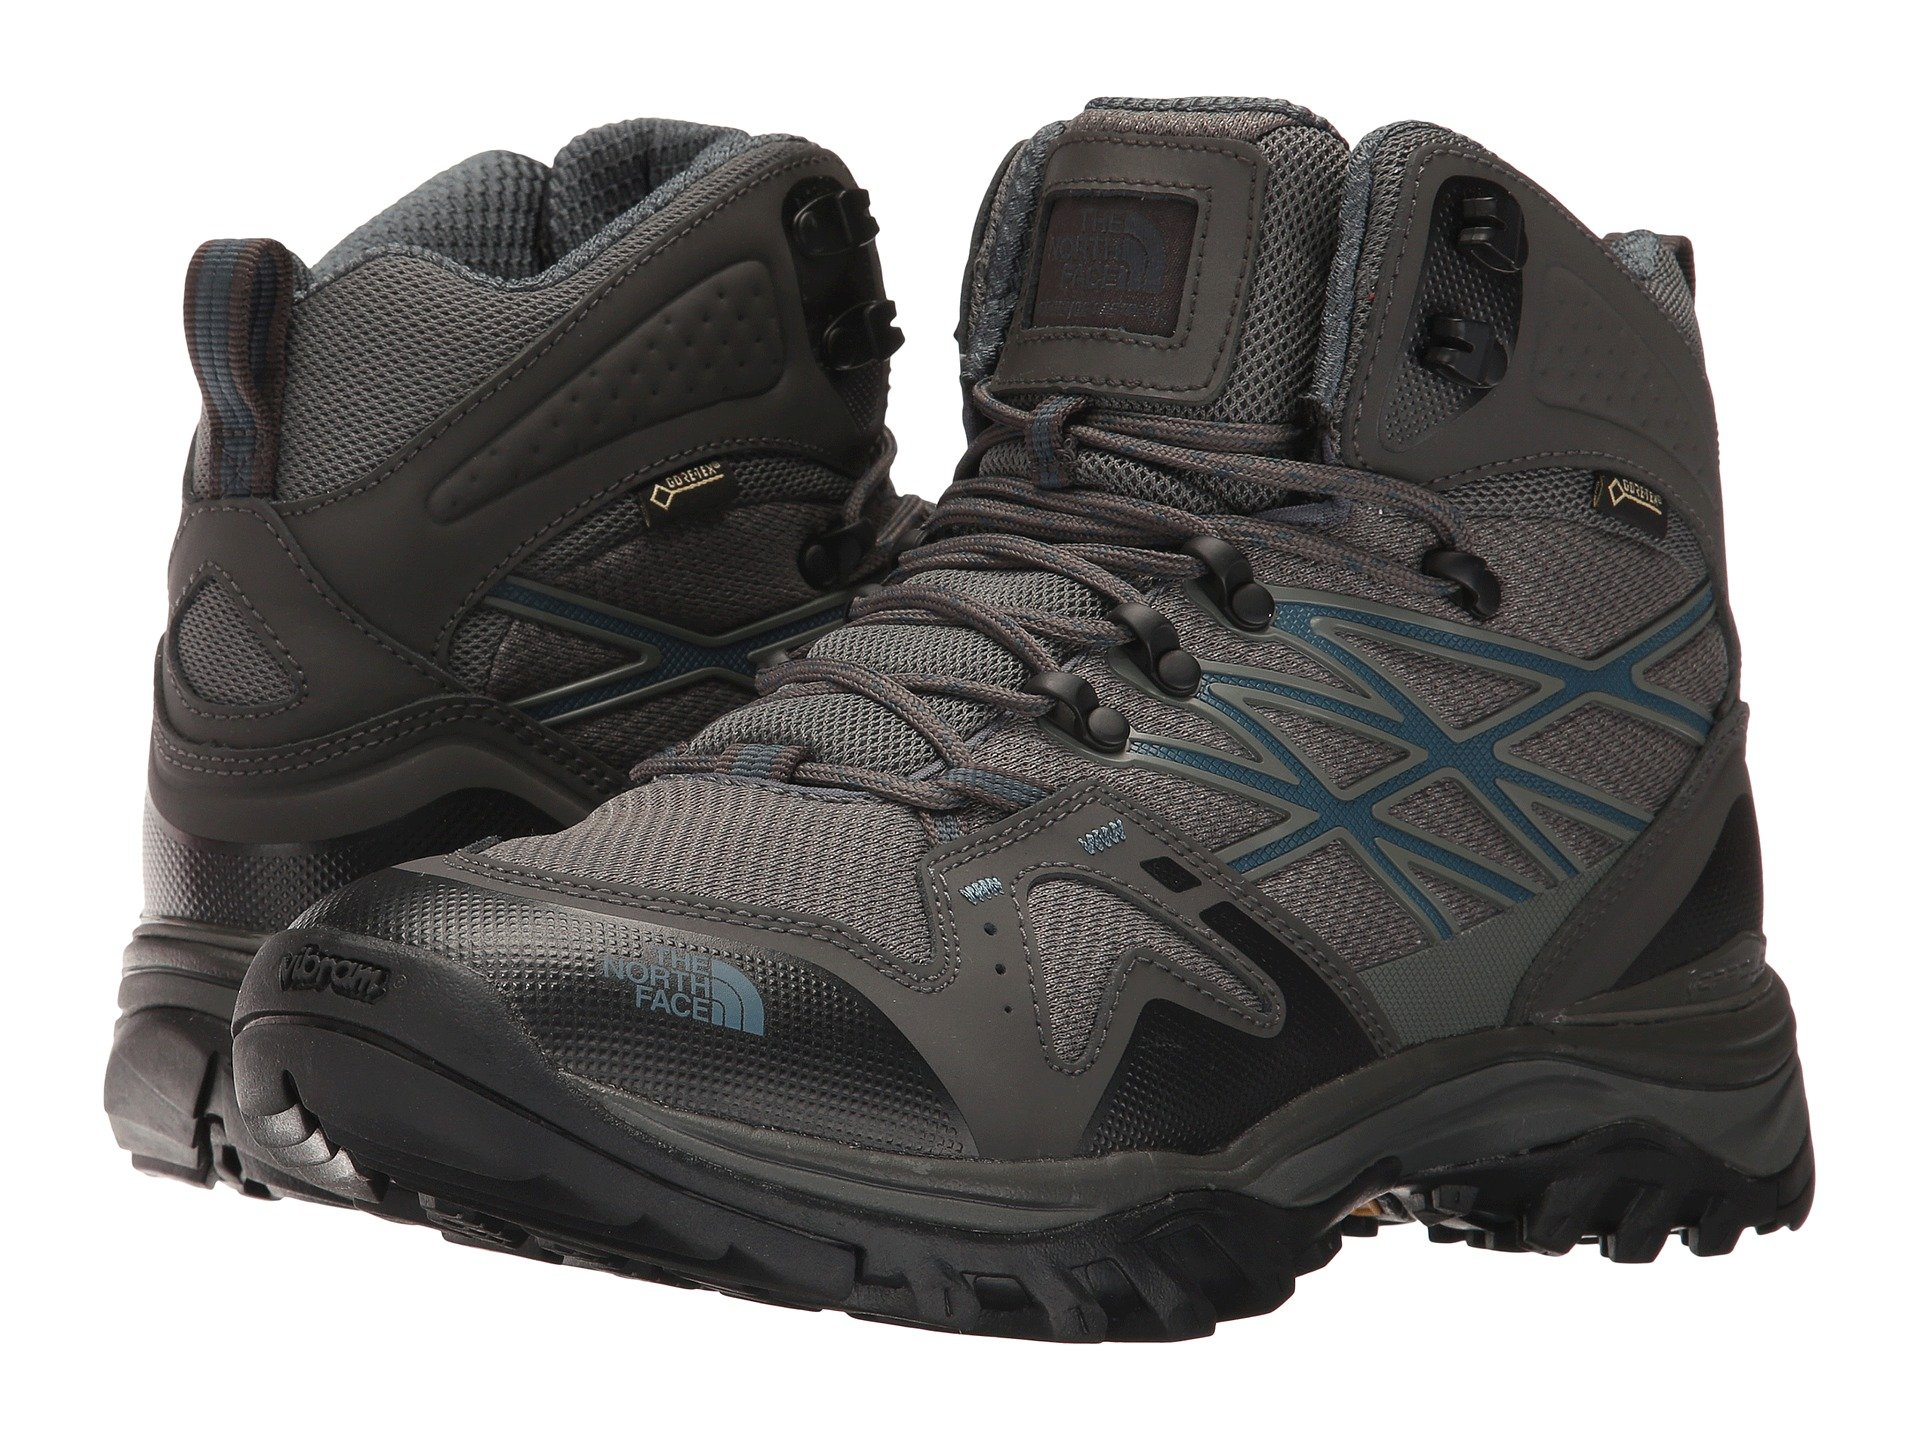 02ea63c49 Men's The North Face Boots + FREE SHIPPING | Shoes | Zappos.com